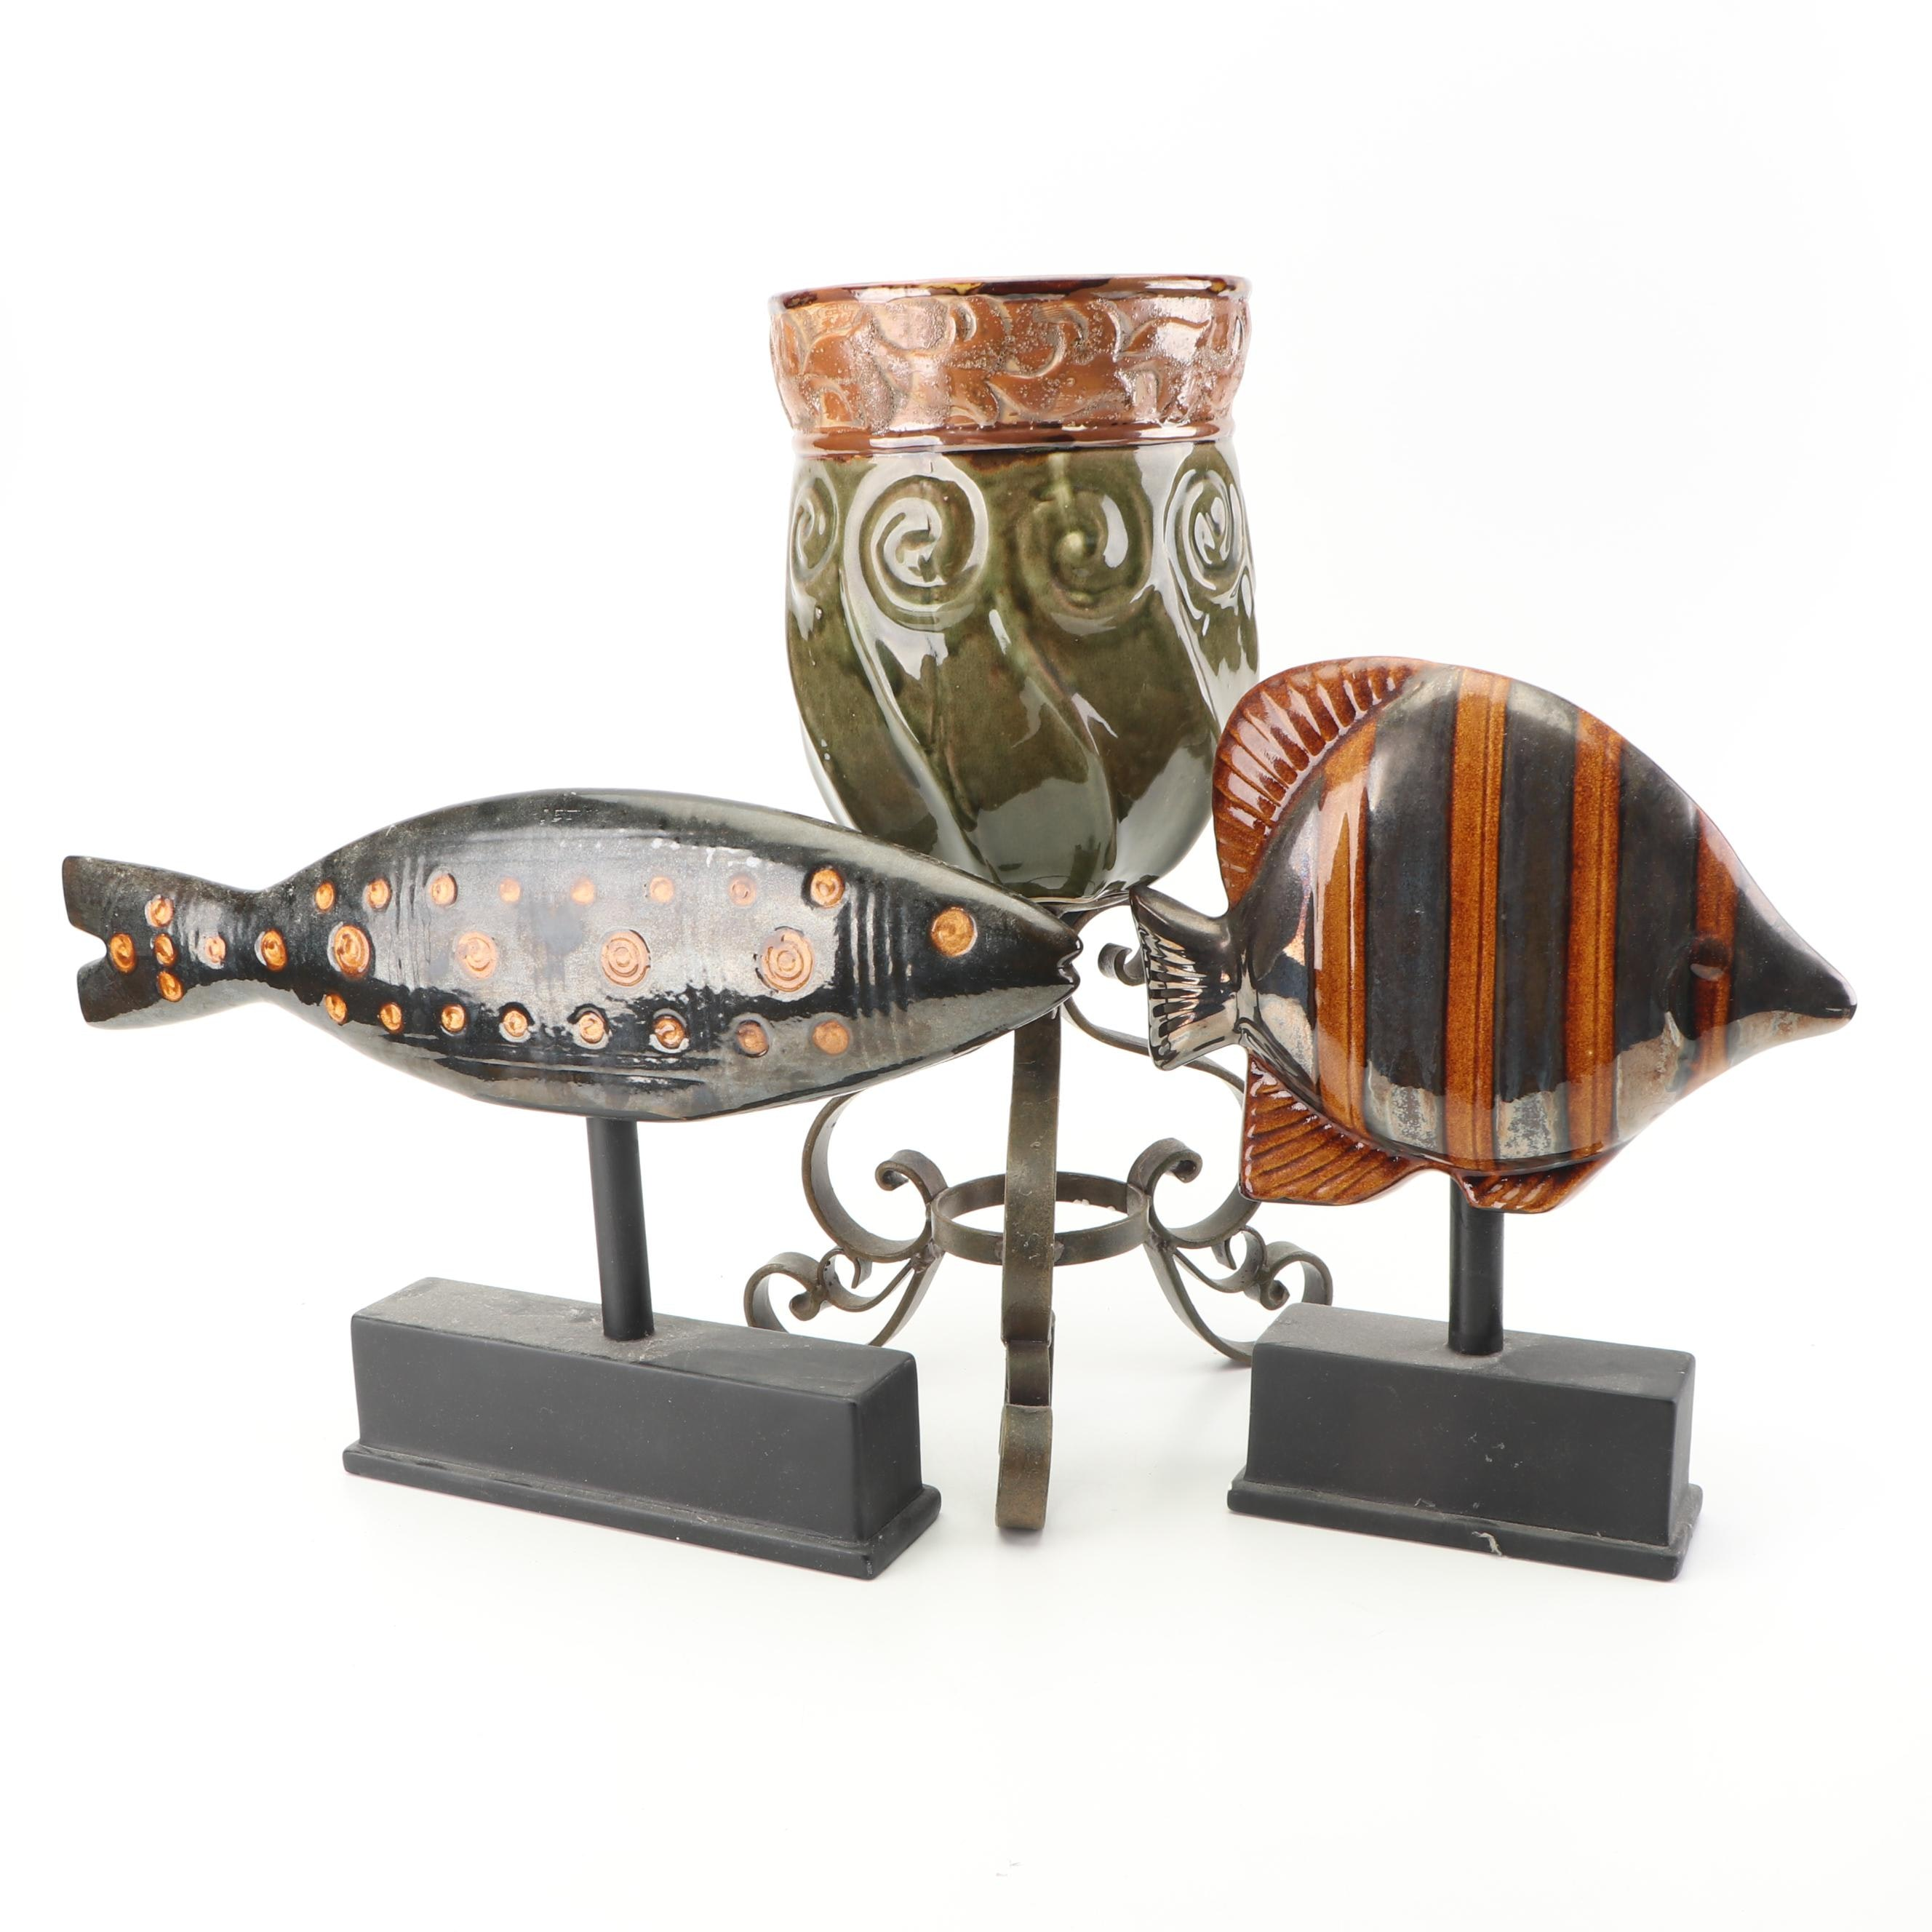 Stoneware Planter on Stand with Fish Decor